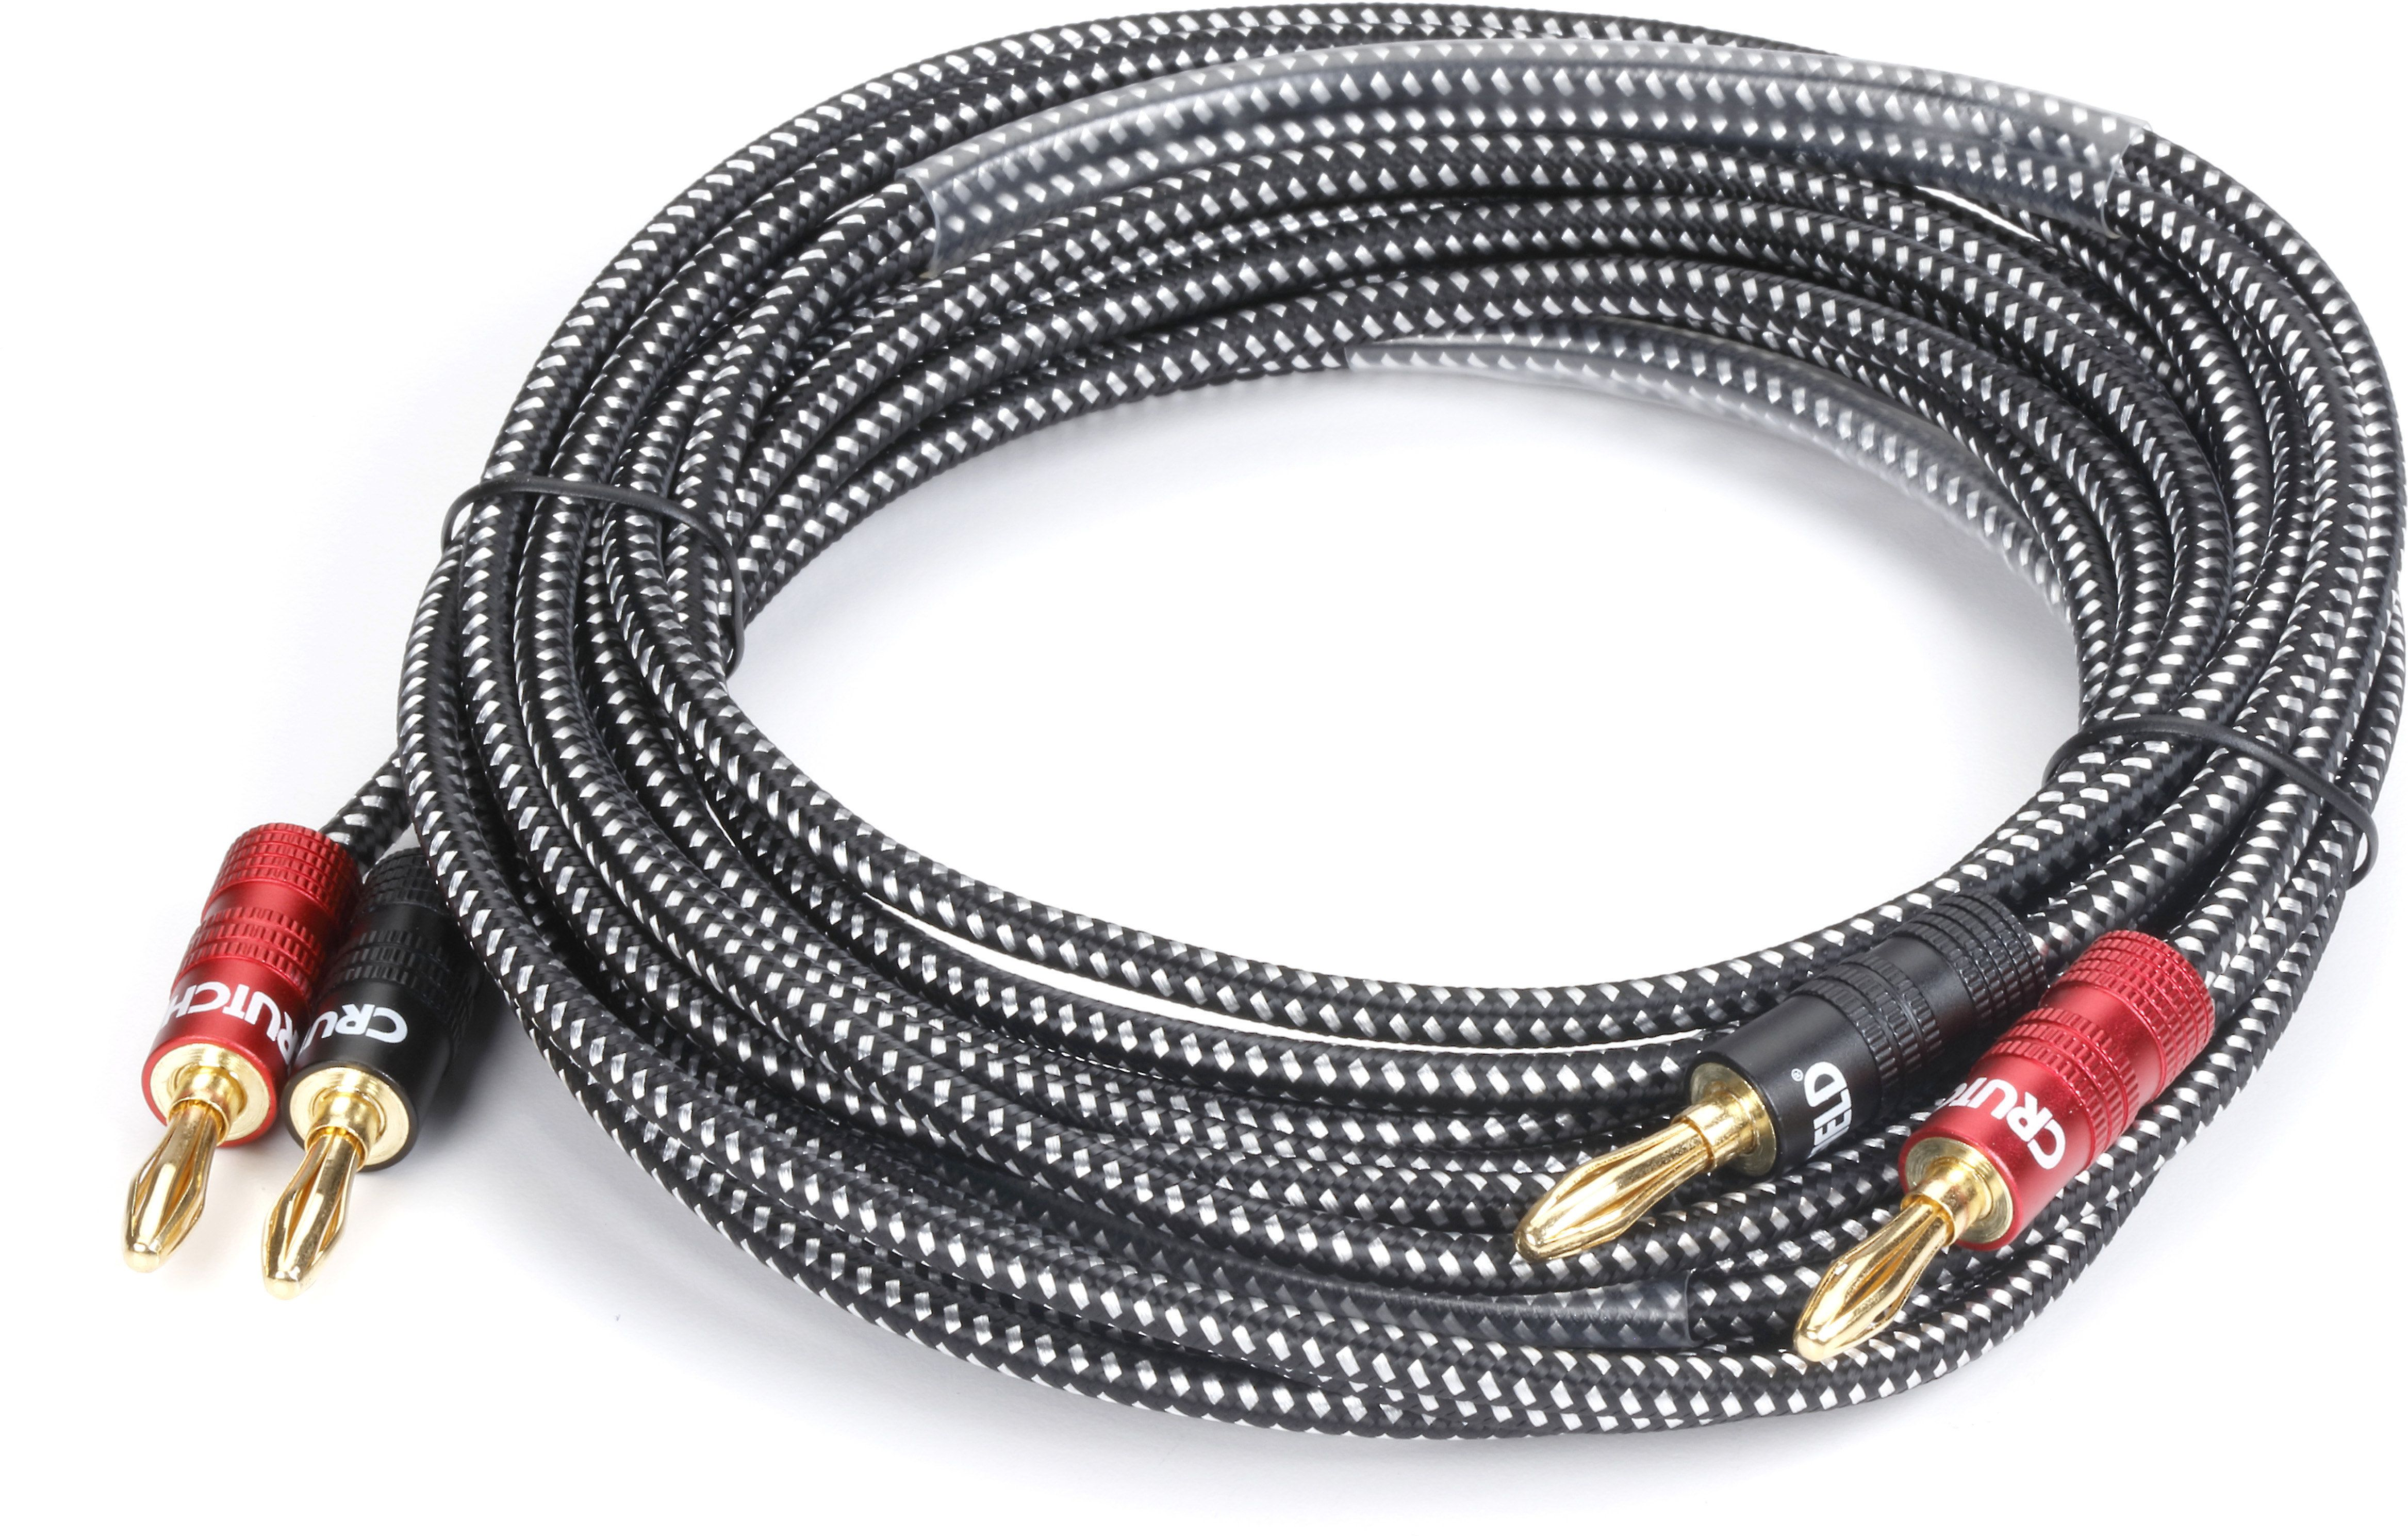 our crutchfield speaker wire with pre attached banana plugs provides an easy secure connection between your speakers and receiver or amplifier the [ 4670 x 2978 Pixel ]